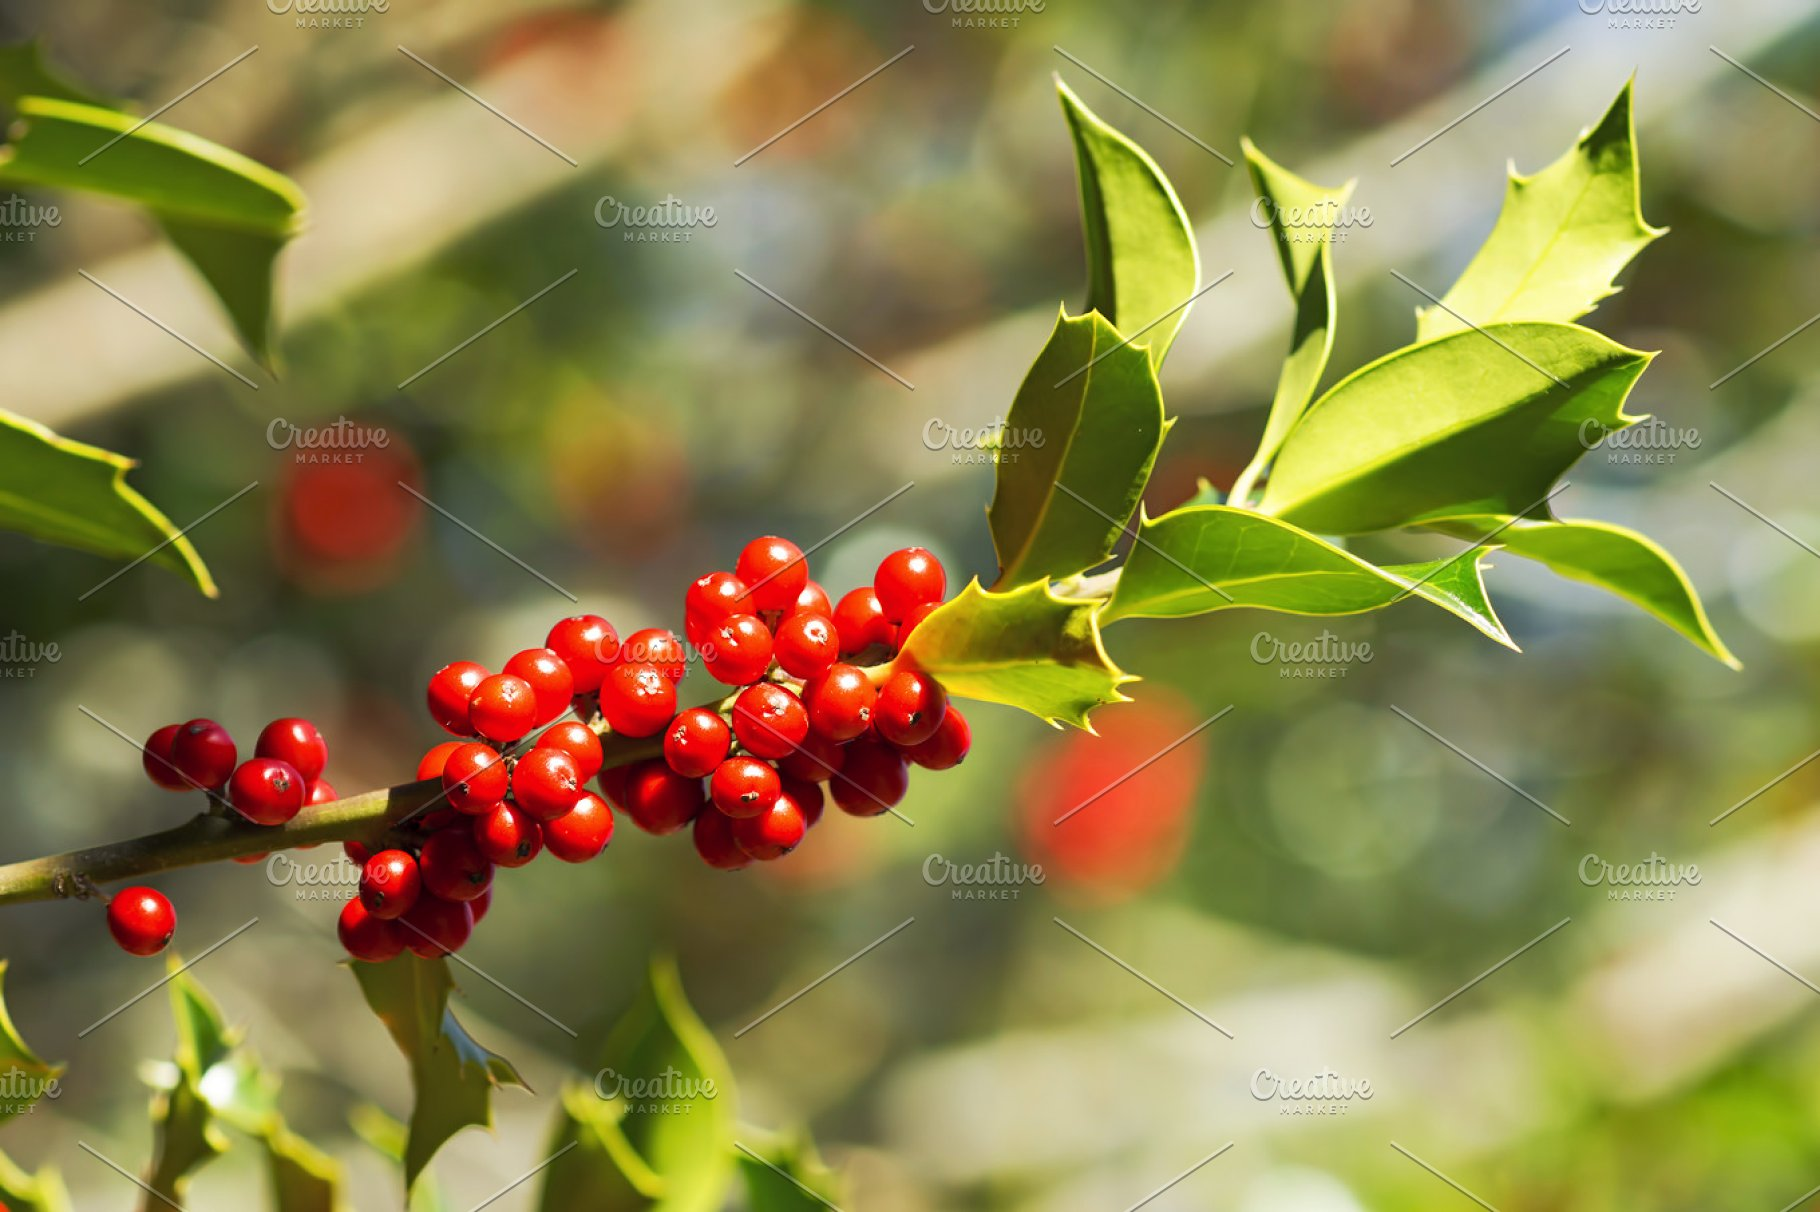 Holly Tree With Red Berries High Quality Holiday Stock Photos